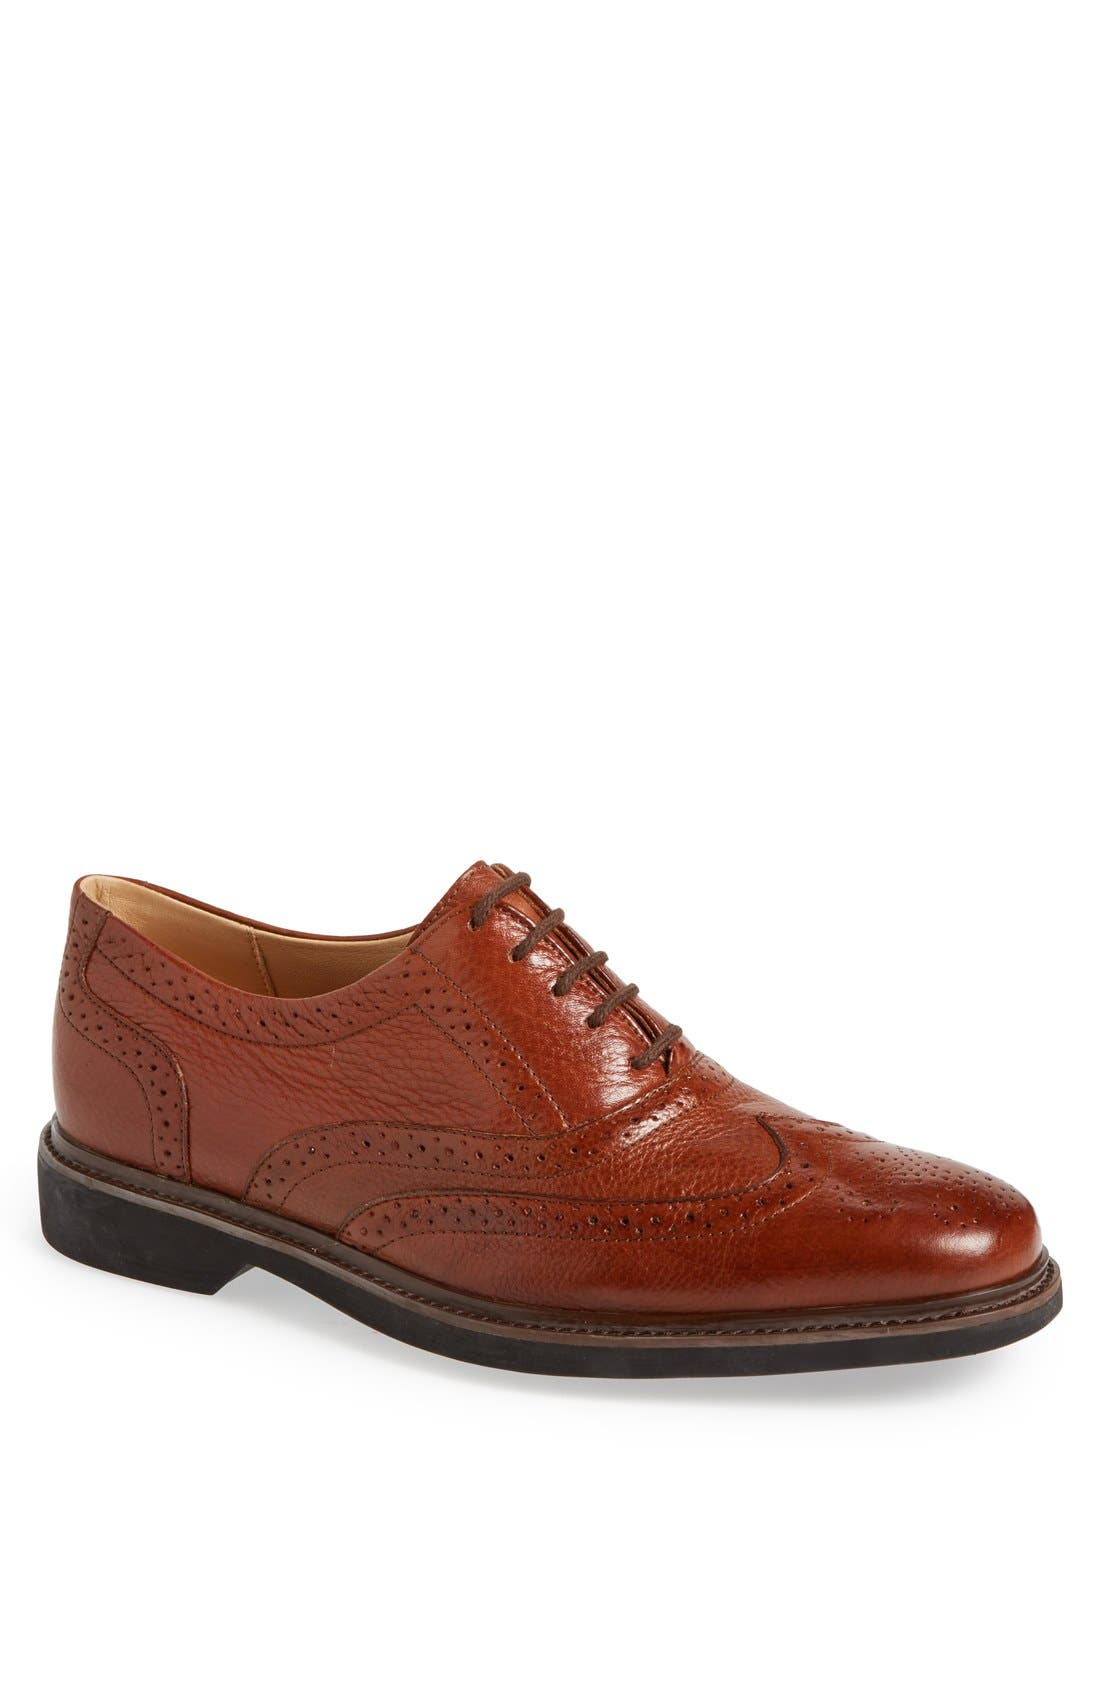 Alternate Image 1 Selected - Anatomic & Co 'Gabriel' Wingtip (Men)